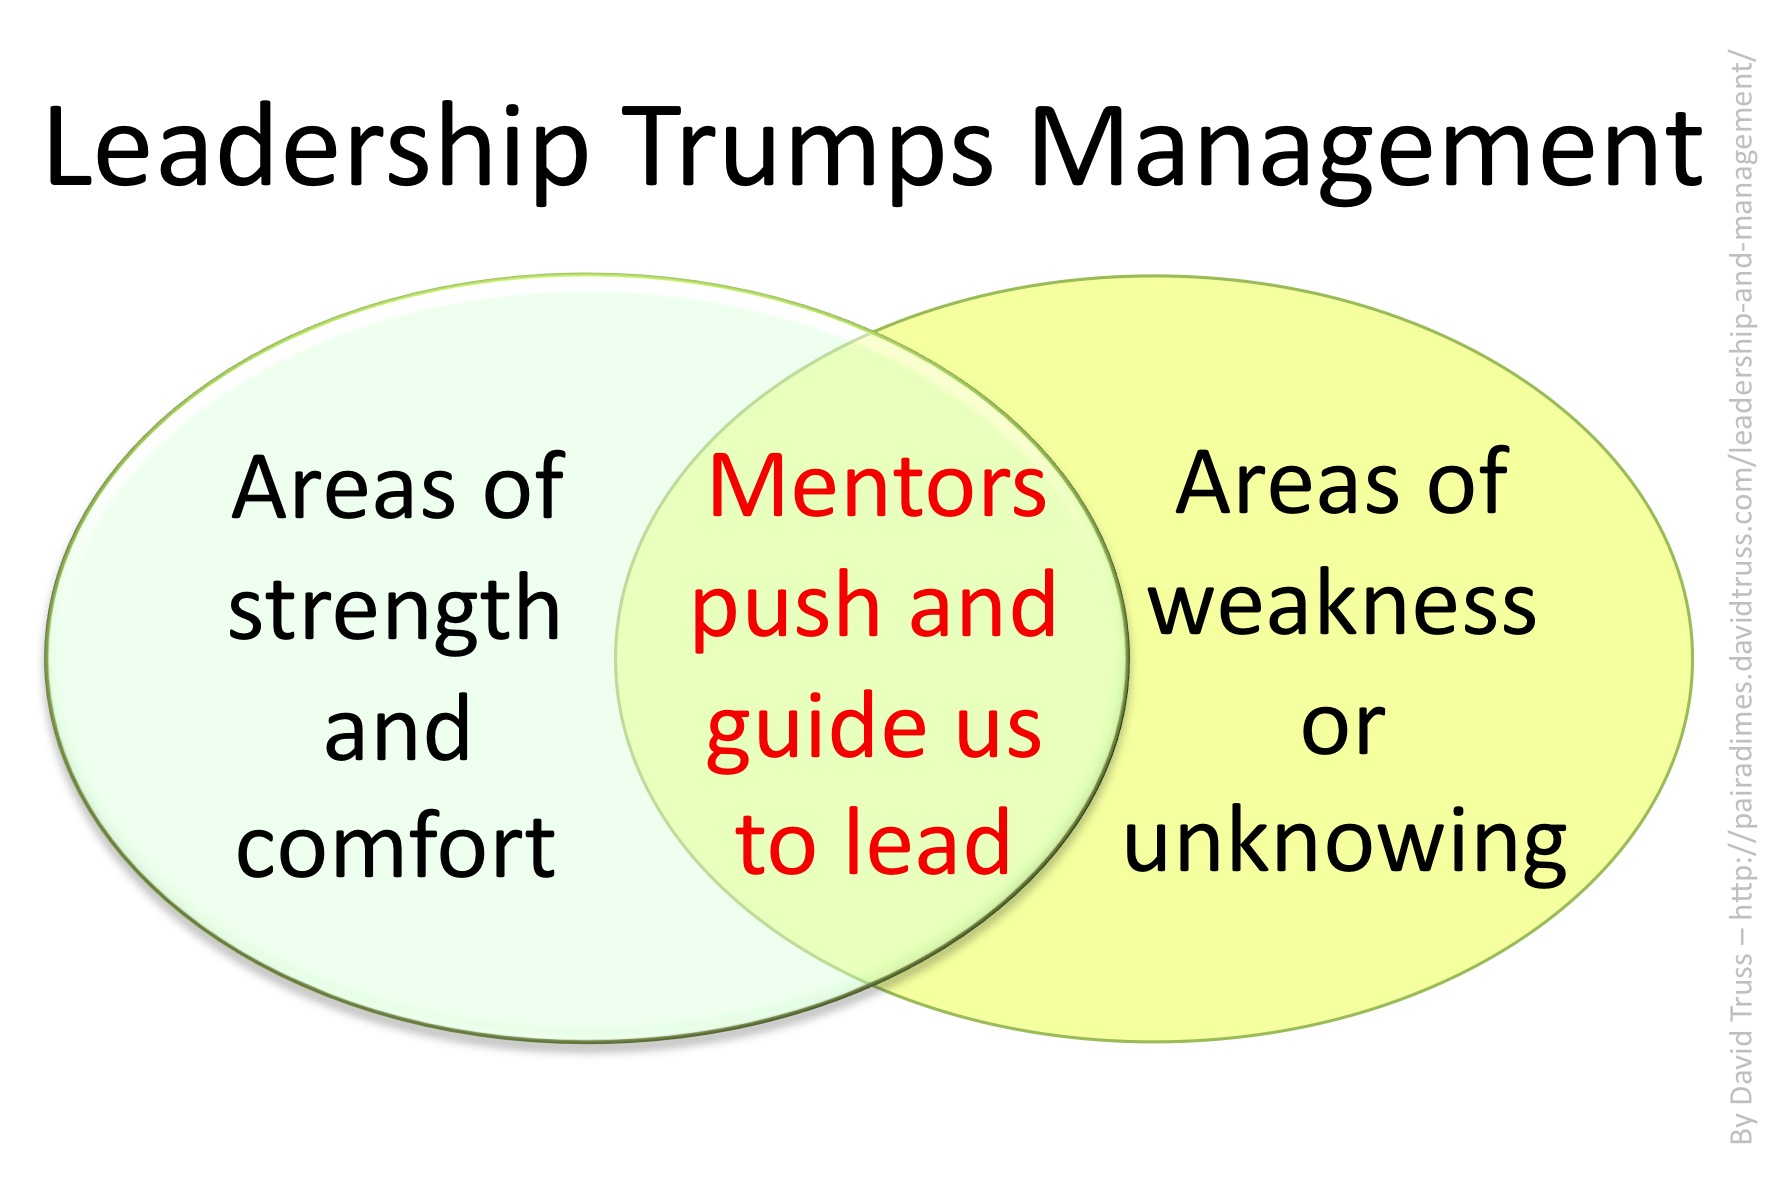 leadership and management david truss pair a dimes for your leadership trumps management